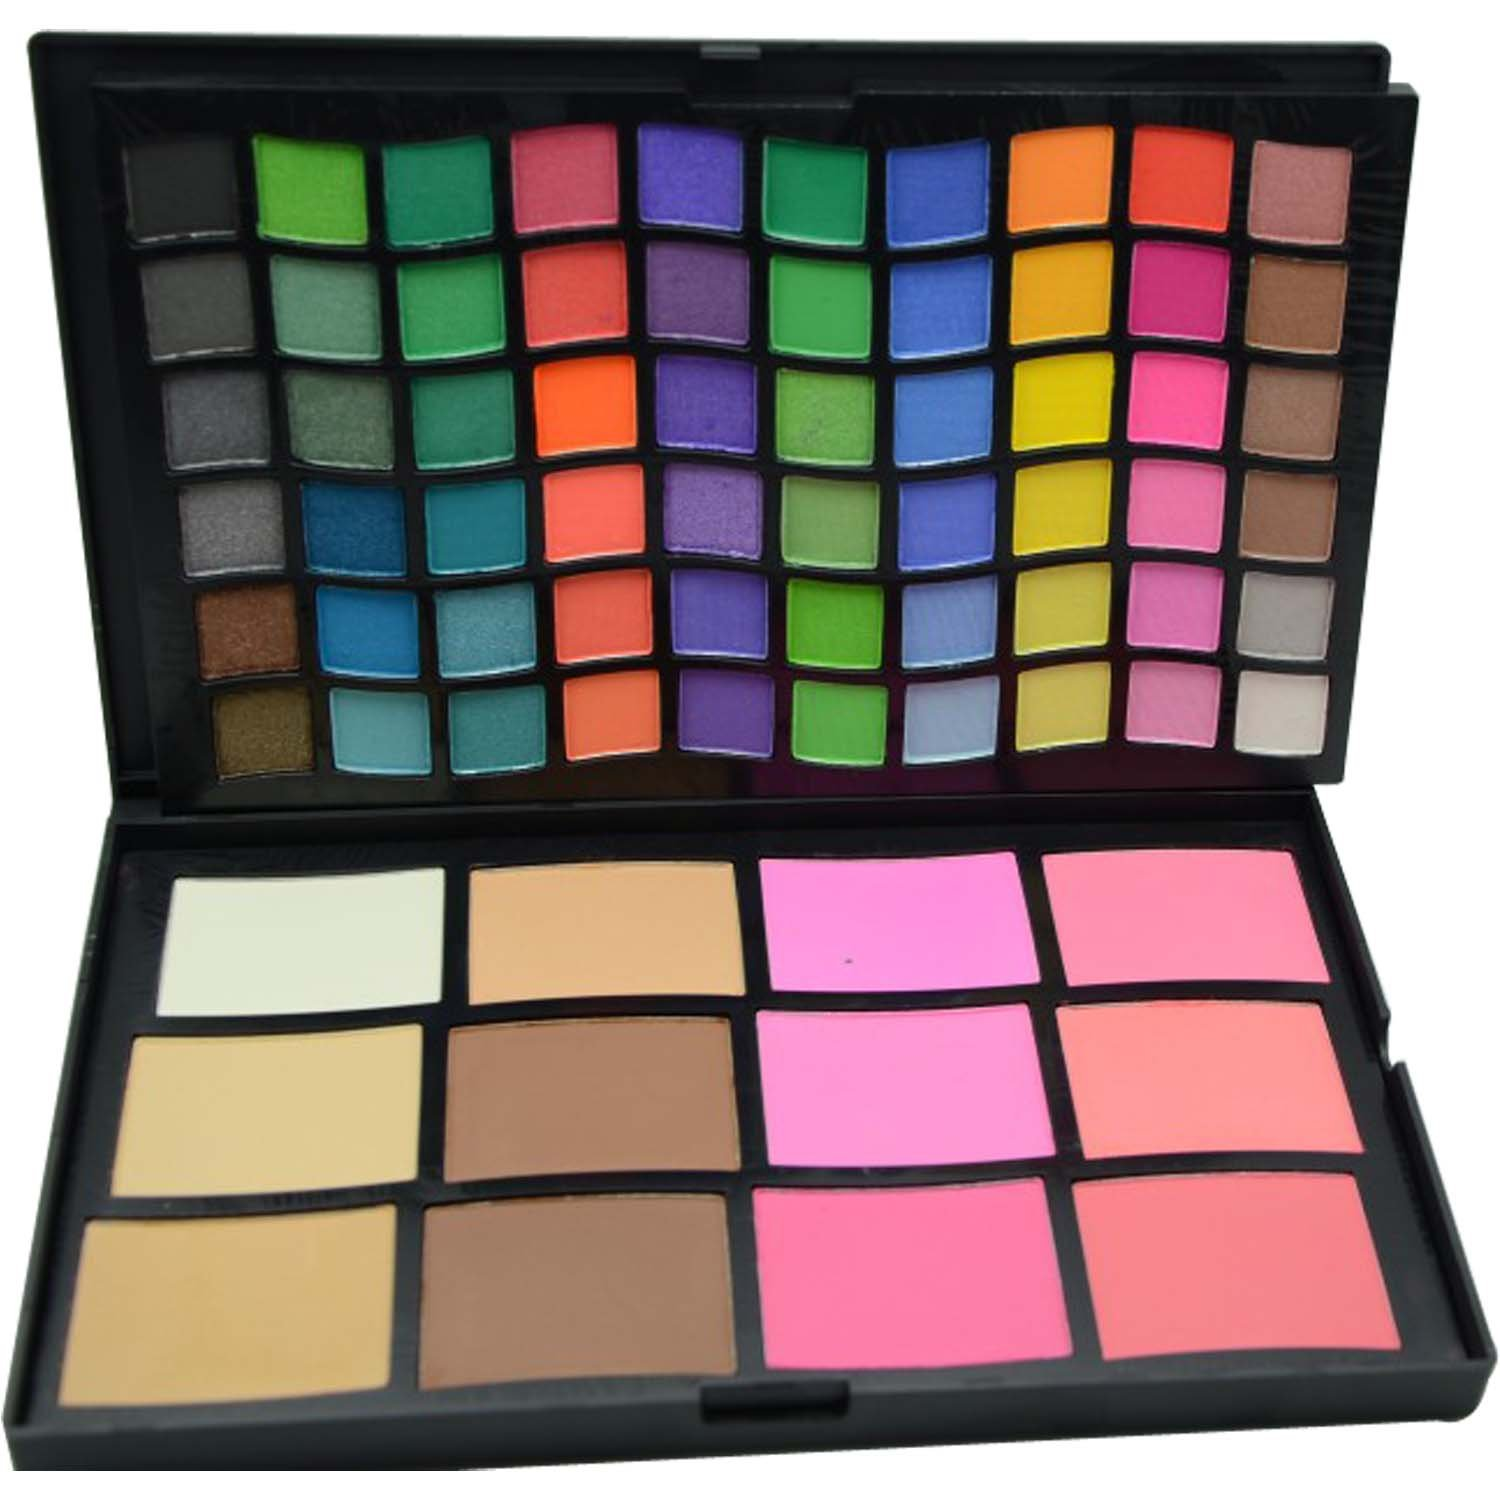 FASH Cosmetics 72 Color Shimmer and Matte Eye Shadow and Blusher Palette